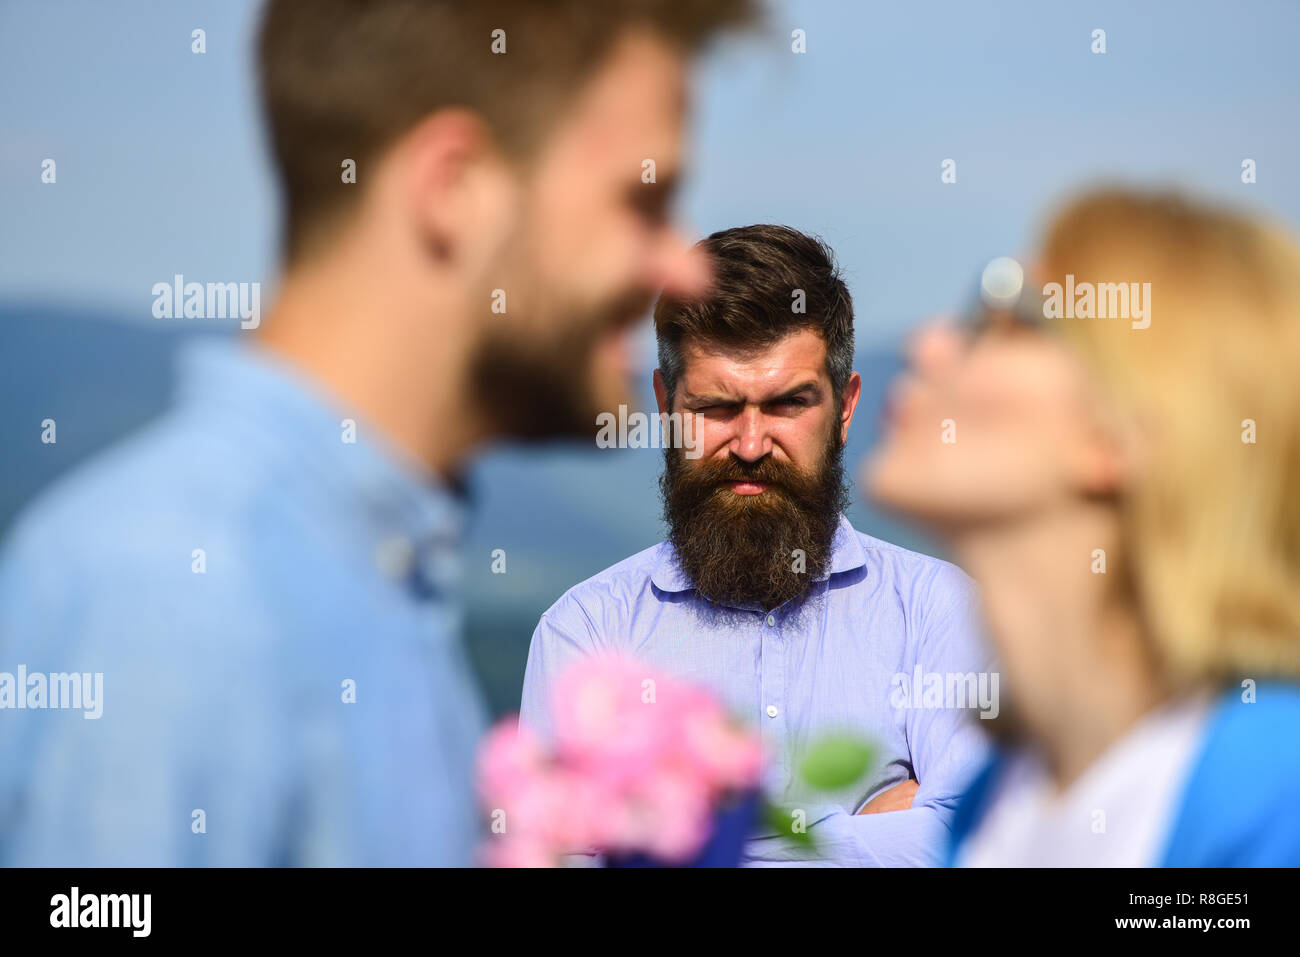 Lovers meeting outdoor flirt romance relations. Couple romantic date lover present bouquet flowers. Couple in love dating while jealous husband fixedly watching on background. Unrequited love concept. - Stock Image